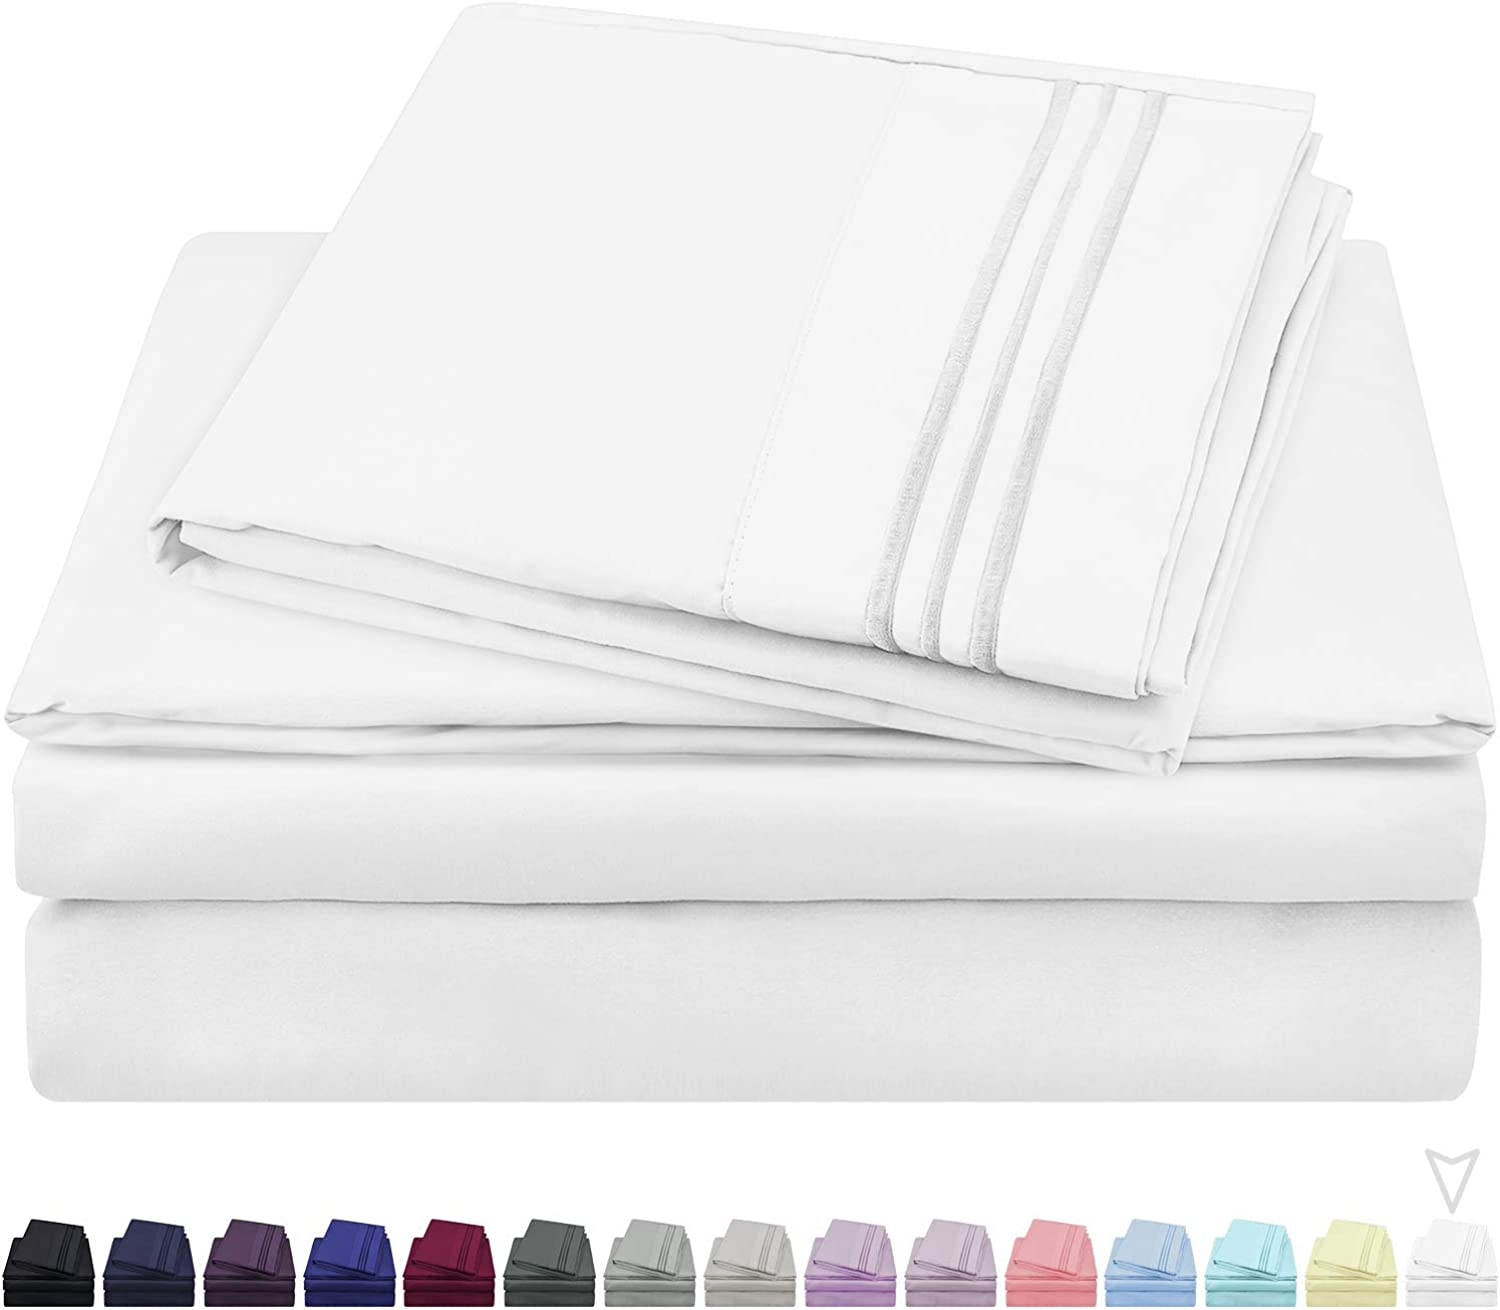 HOMEIDEAS Hotel Luxury Soft 1800 Series Premium Bed Sheets Set  105 GSM Soft Microfiber Bedding Sheets  Deep Pockets, Hypoallergenic, Wrinkle & Fade Resistant (King,White)